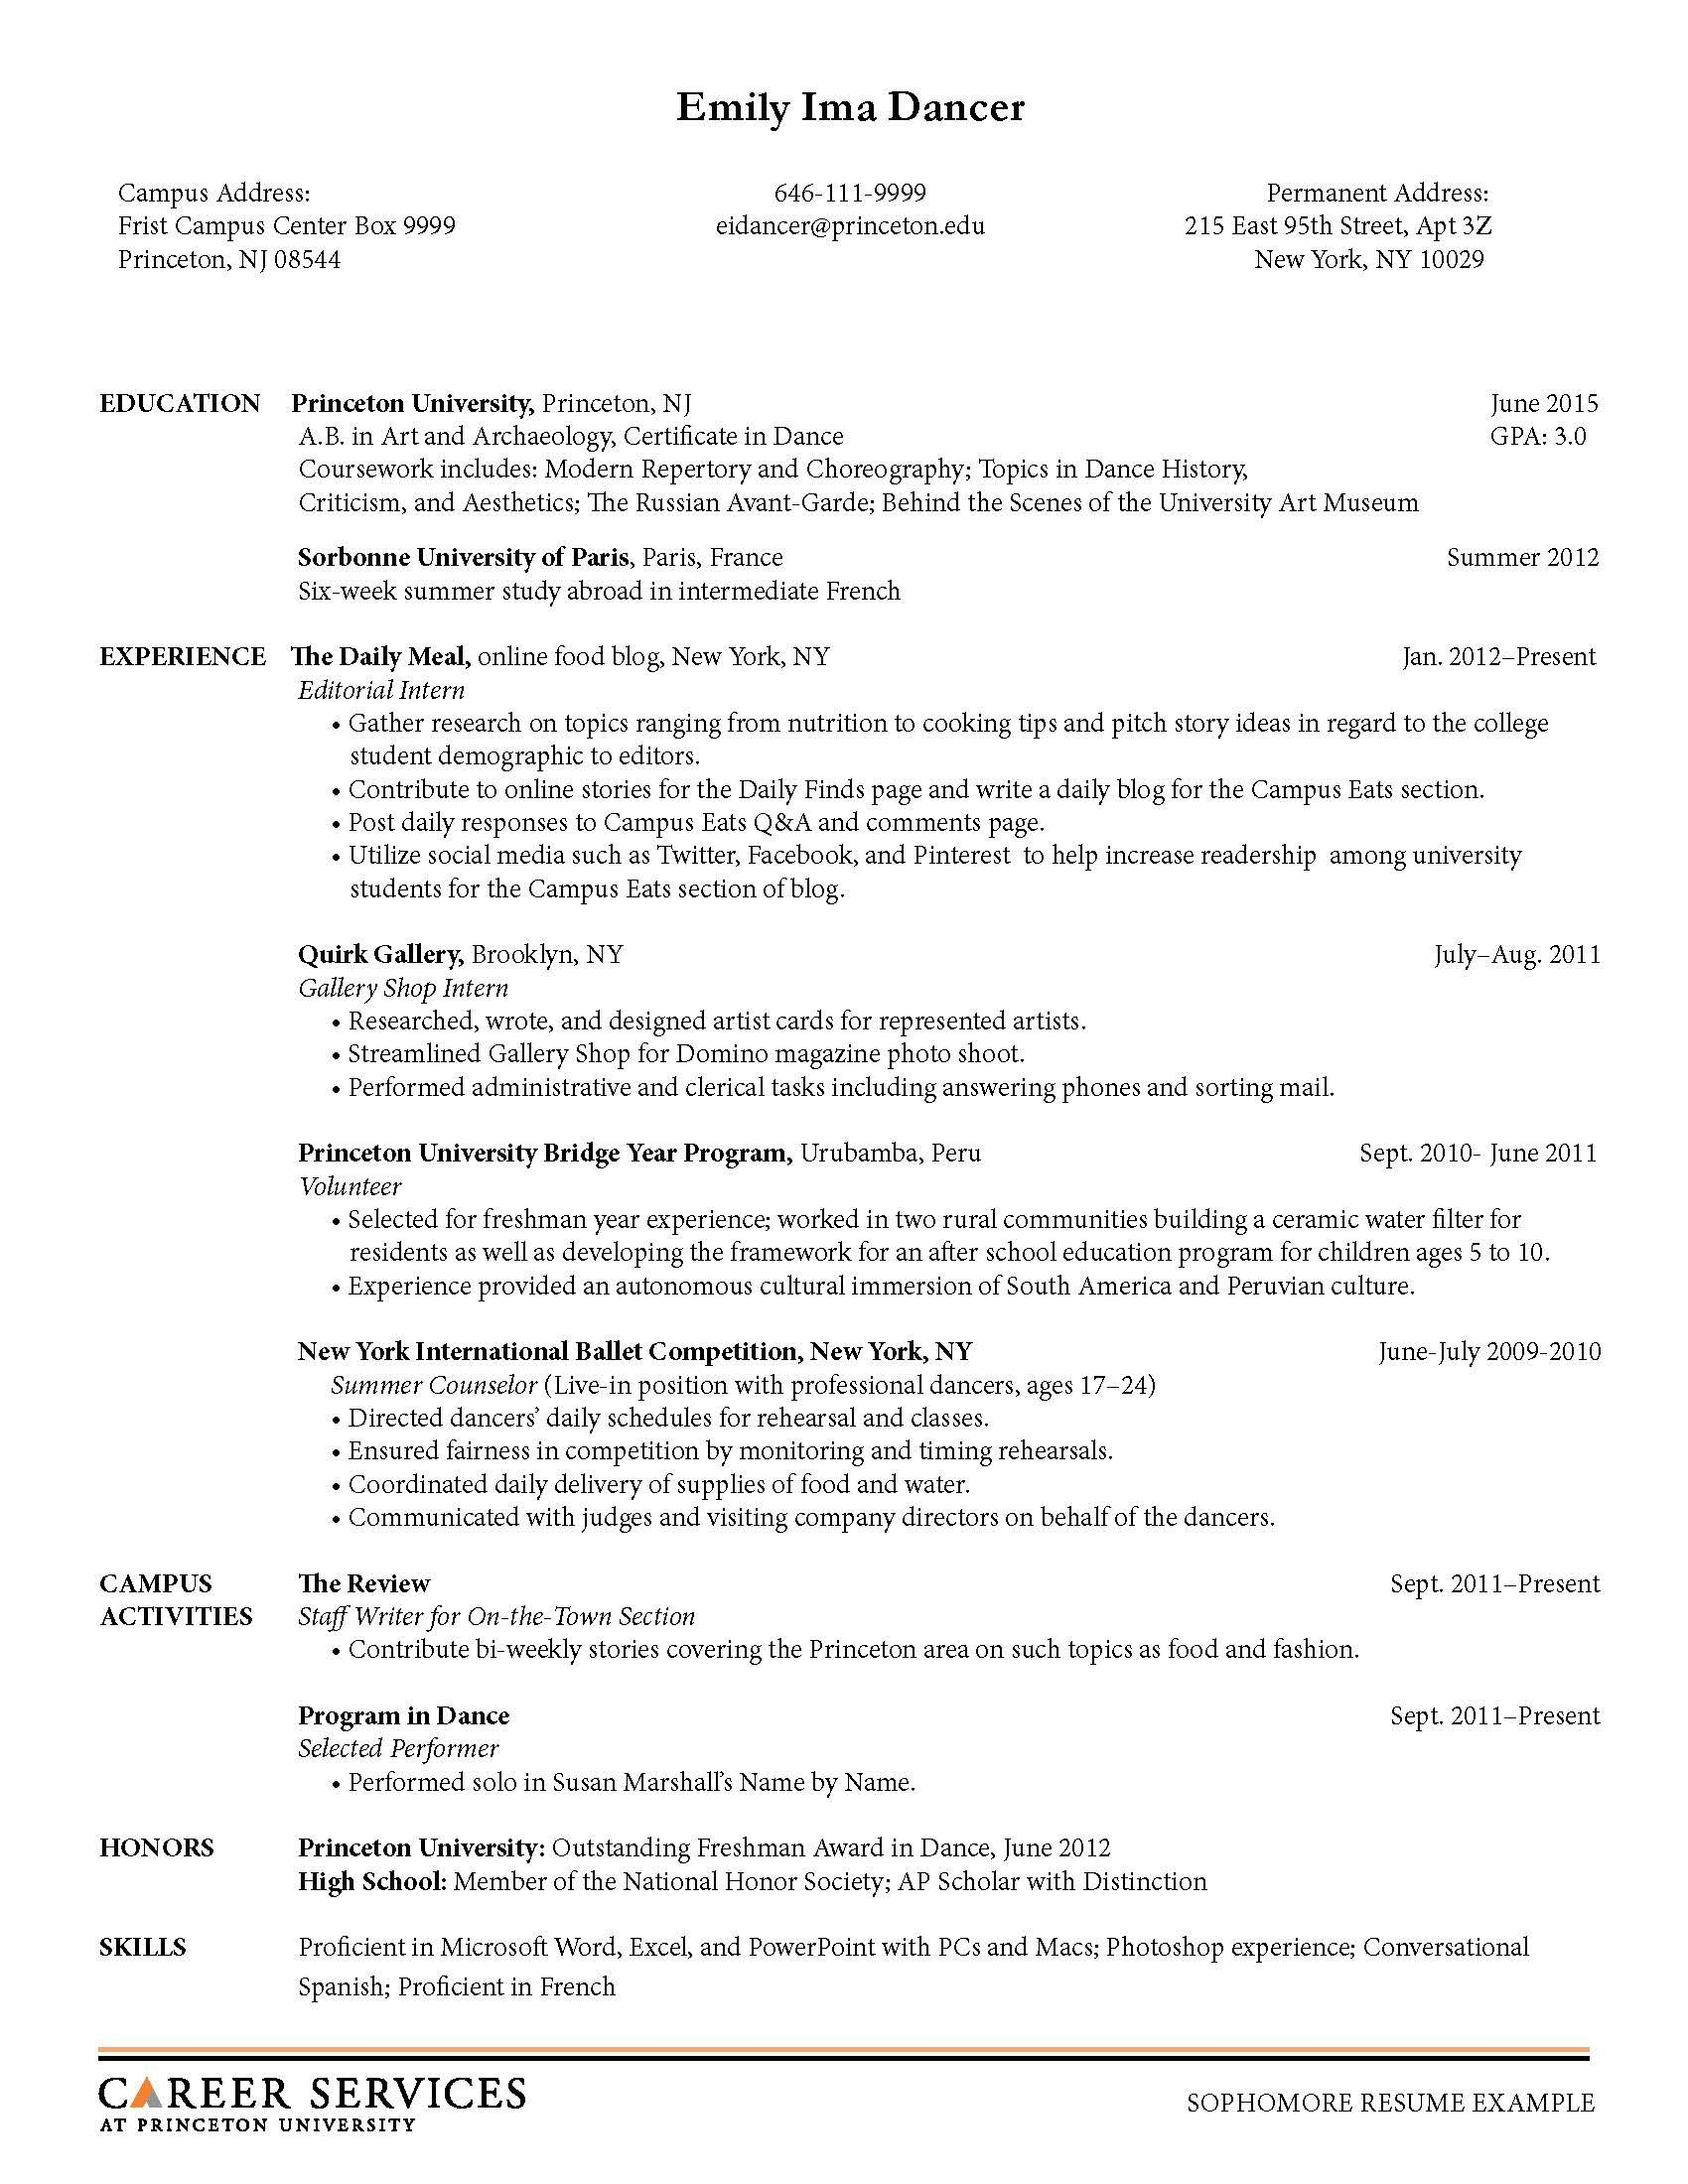 Opposenewapstandardsus  Splendid Sample Resume Resume And Career On Pinterest With Marvelous Resume For Tutor Besides Skills In Resume Sample Furthermore Teaching Resume Example With Amazing How To Submit A Resume Also Resume Builder Help In Addition Industrial Resume And Cover Letters For Resumes Samples As Well As Pharmacy Technician Resume Template Additionally Peoplesoft Resume From Pinterestcom With Opposenewapstandardsus  Marvelous Sample Resume Resume And Career On Pinterest With Amazing Resume For Tutor Besides Skills In Resume Sample Furthermore Teaching Resume Example And Splendid How To Submit A Resume Also Resume Builder Help In Addition Industrial Resume From Pinterestcom